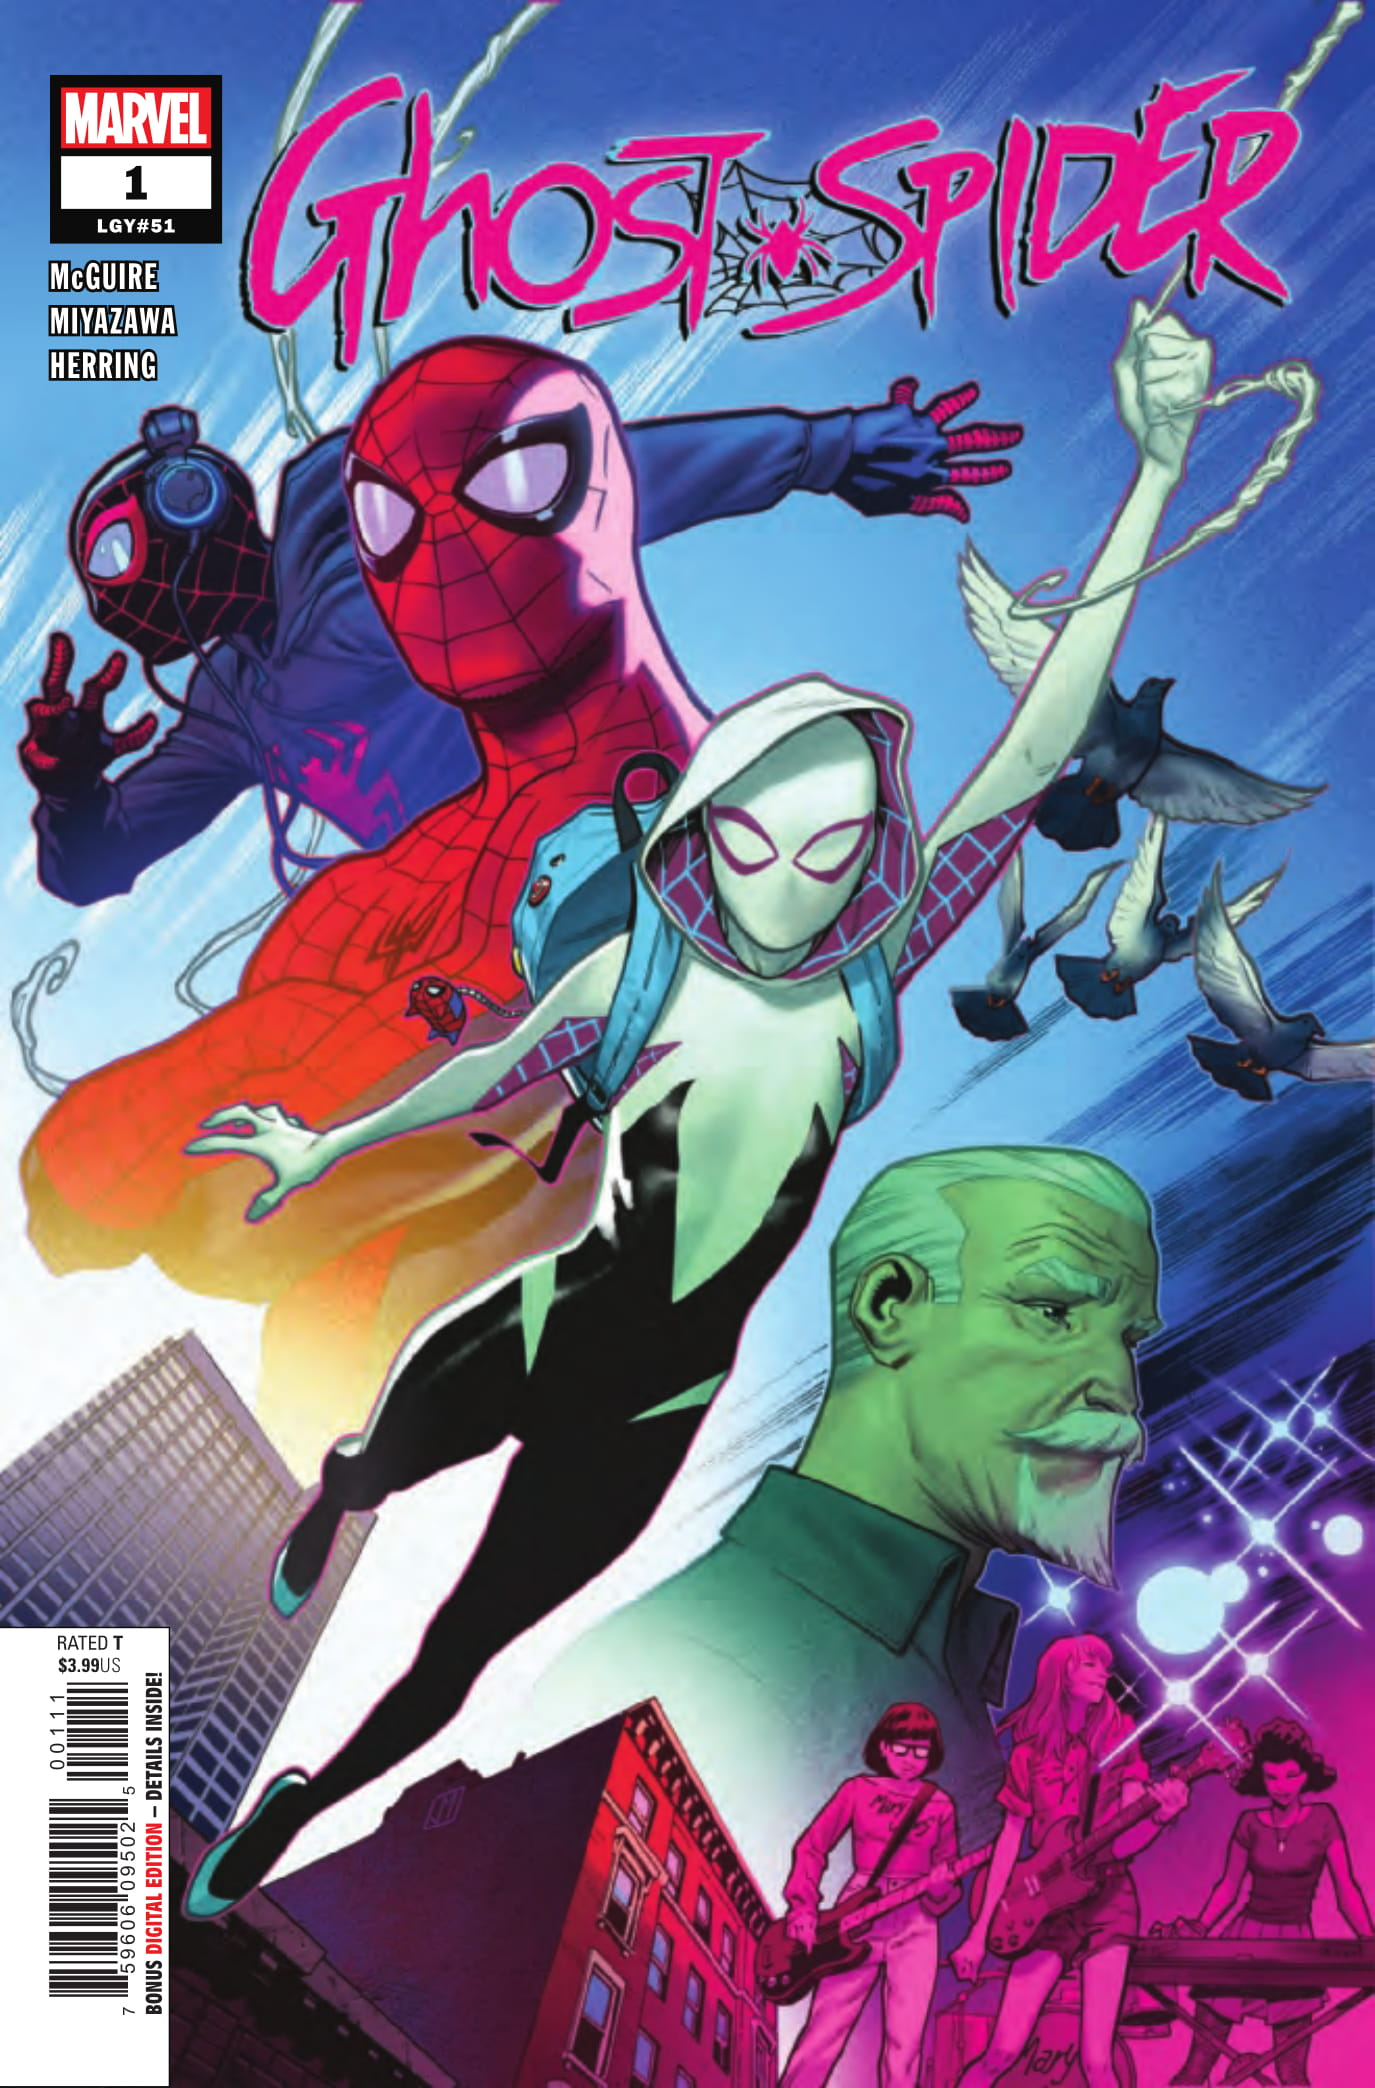 Ghost-Spider #1 cover art by Jorge Molina